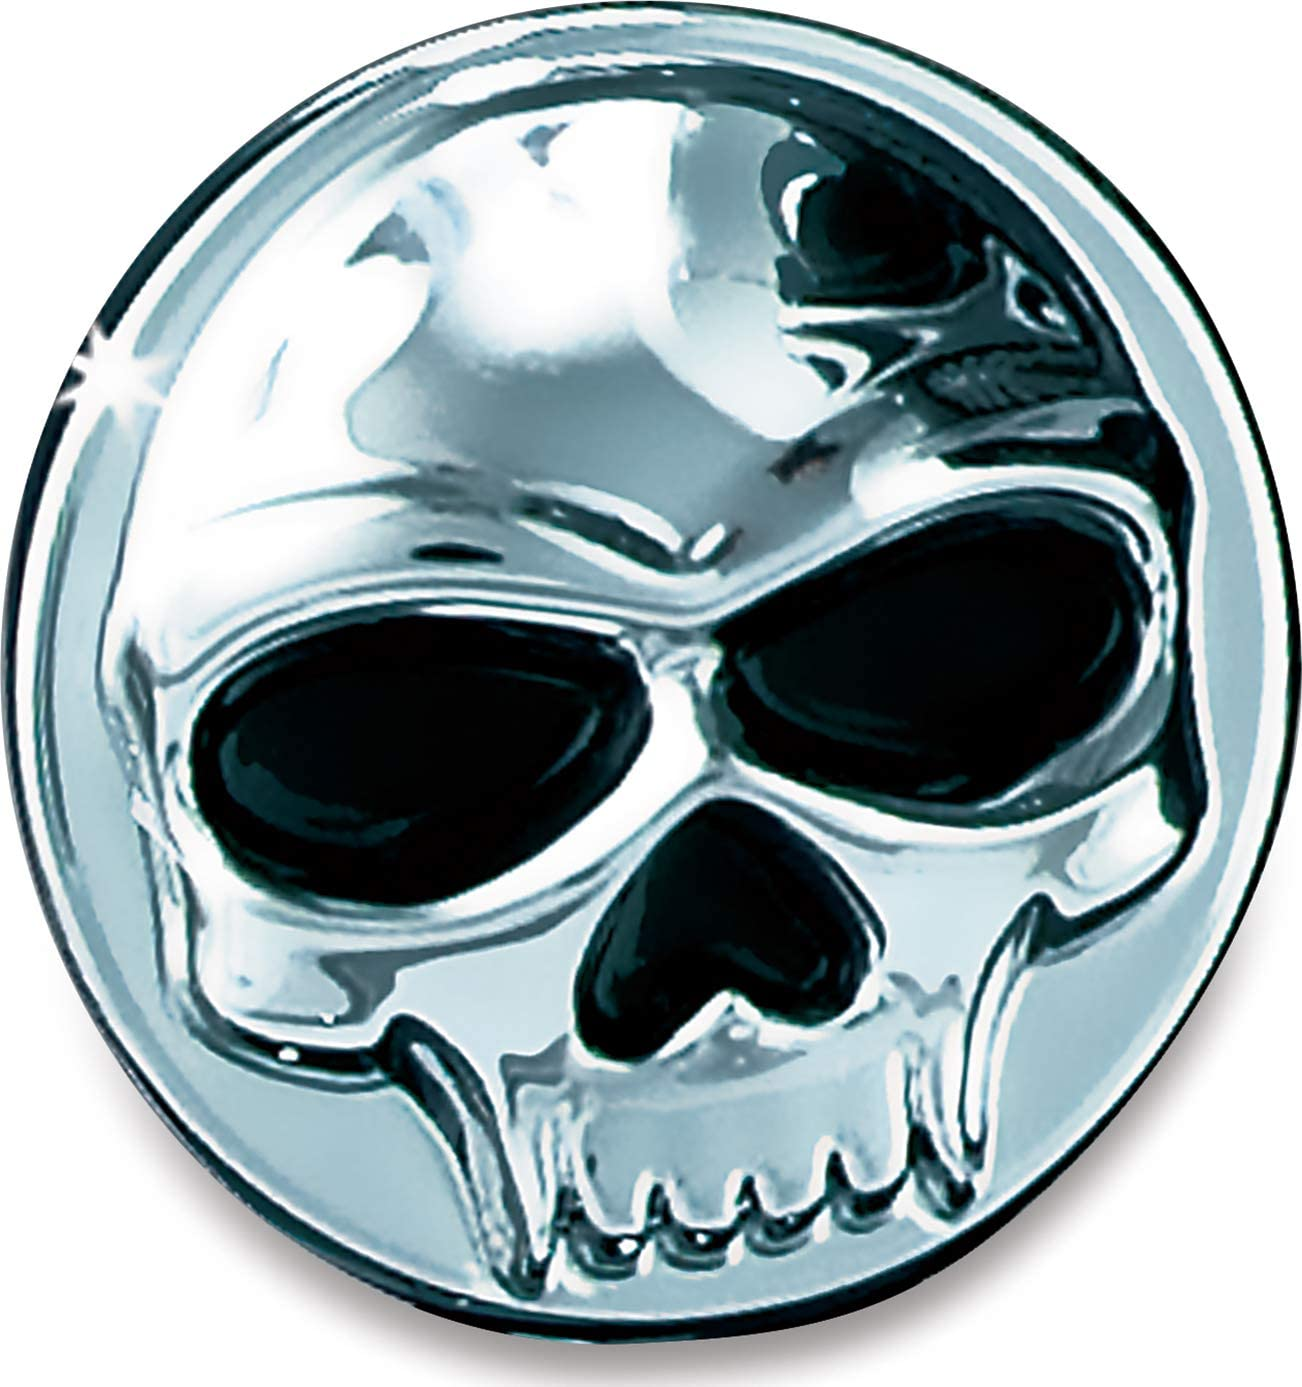 Chrome Pack of 1 Replacement Zombie Skull Emblem for Foot Pegs Kuryakyn 4473 Motorcycle Accent Accessory